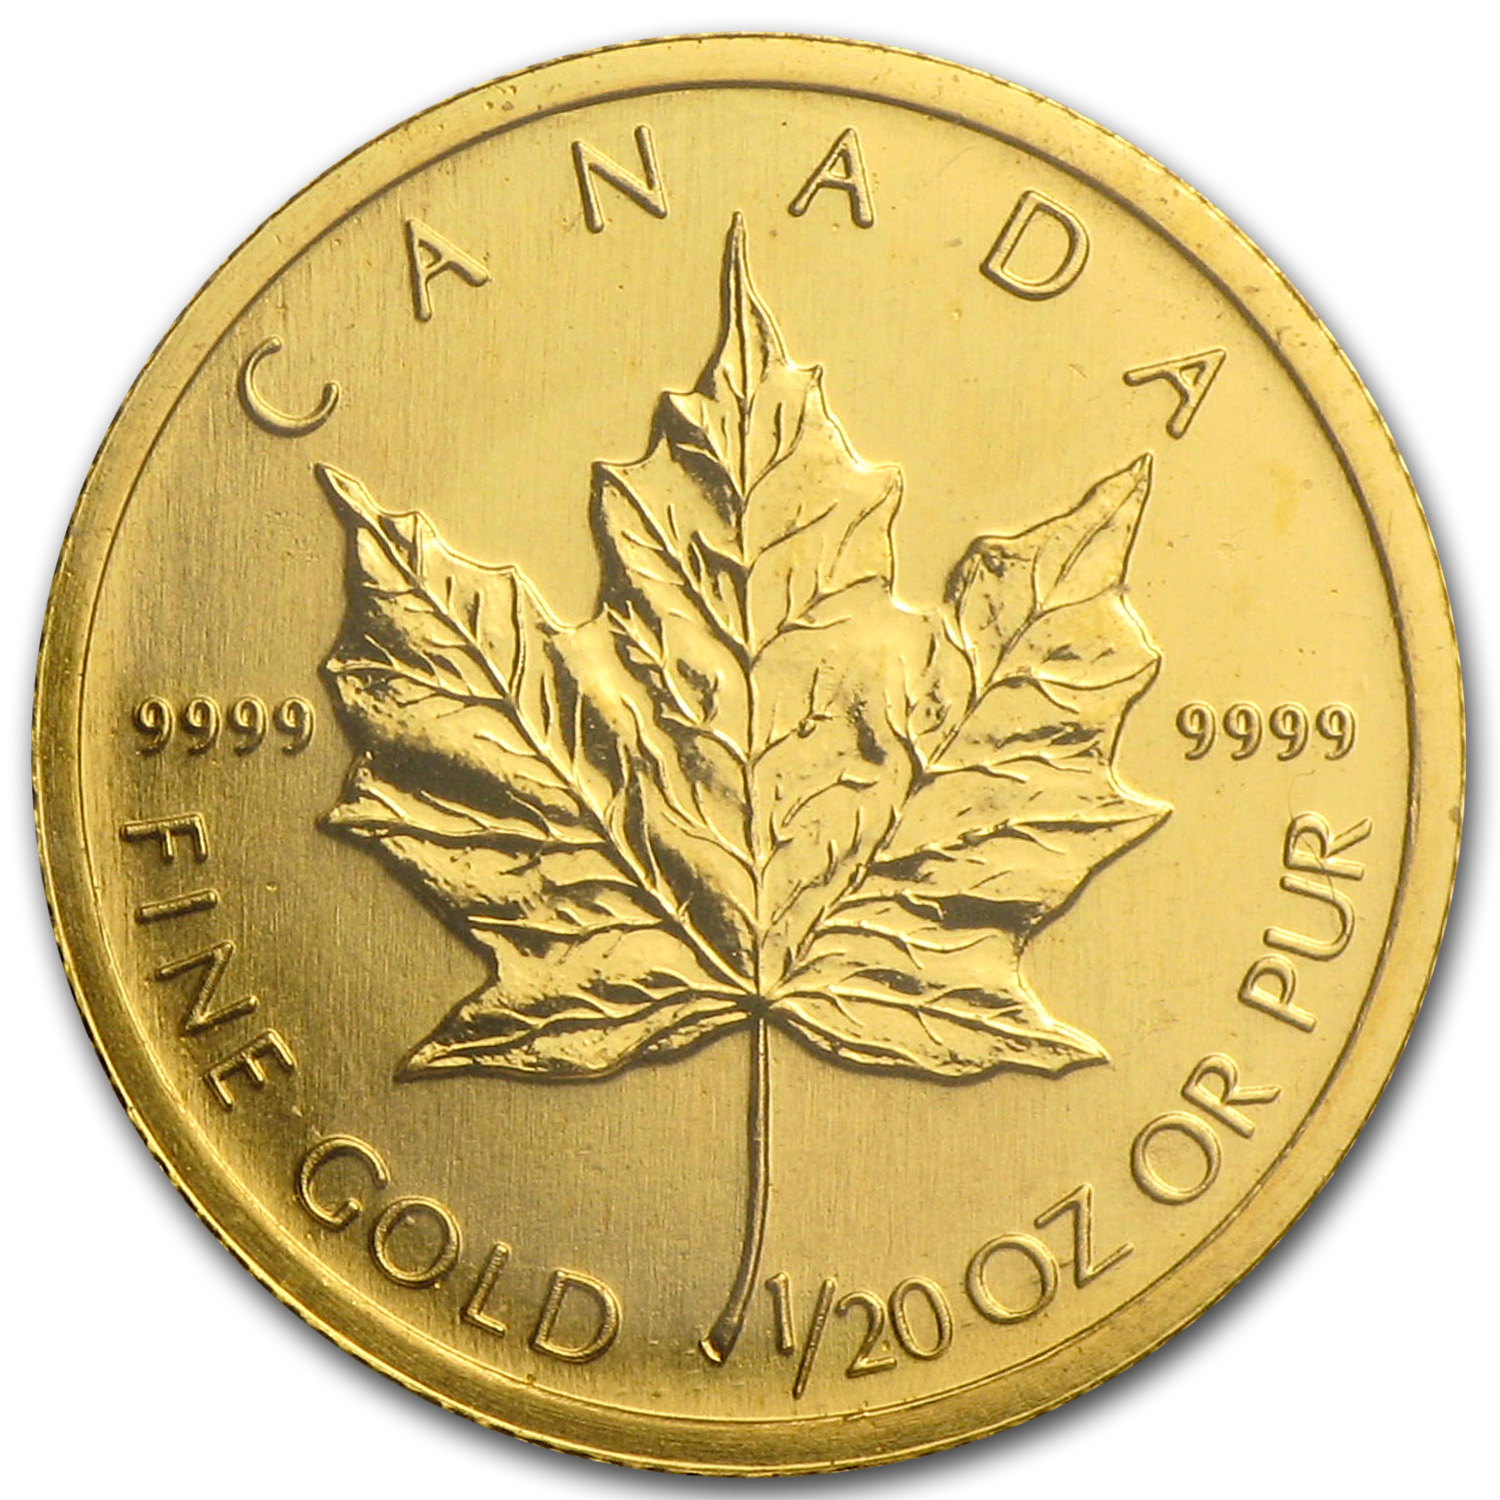 2003 Canada 1/20 oz Gold Maple Leaf BU